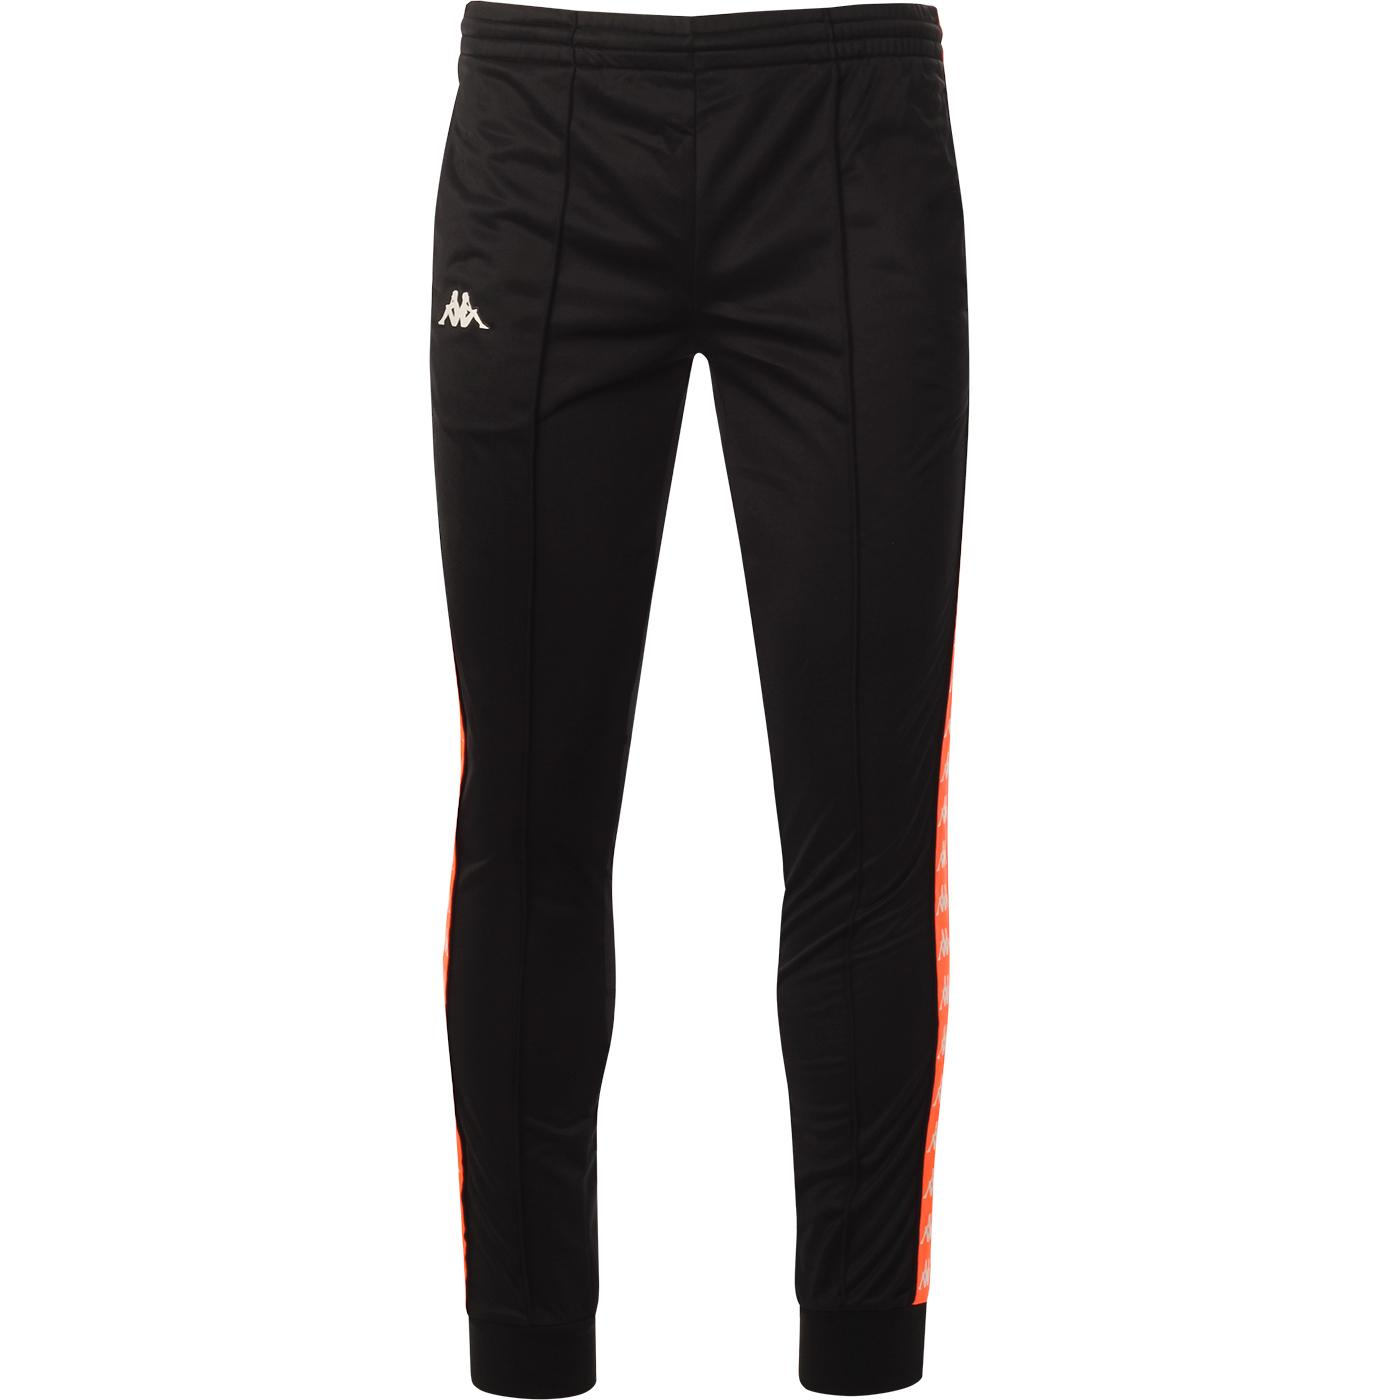 Rastoria KAPPA Banda 222 Track Pants BLACK/ORANGE